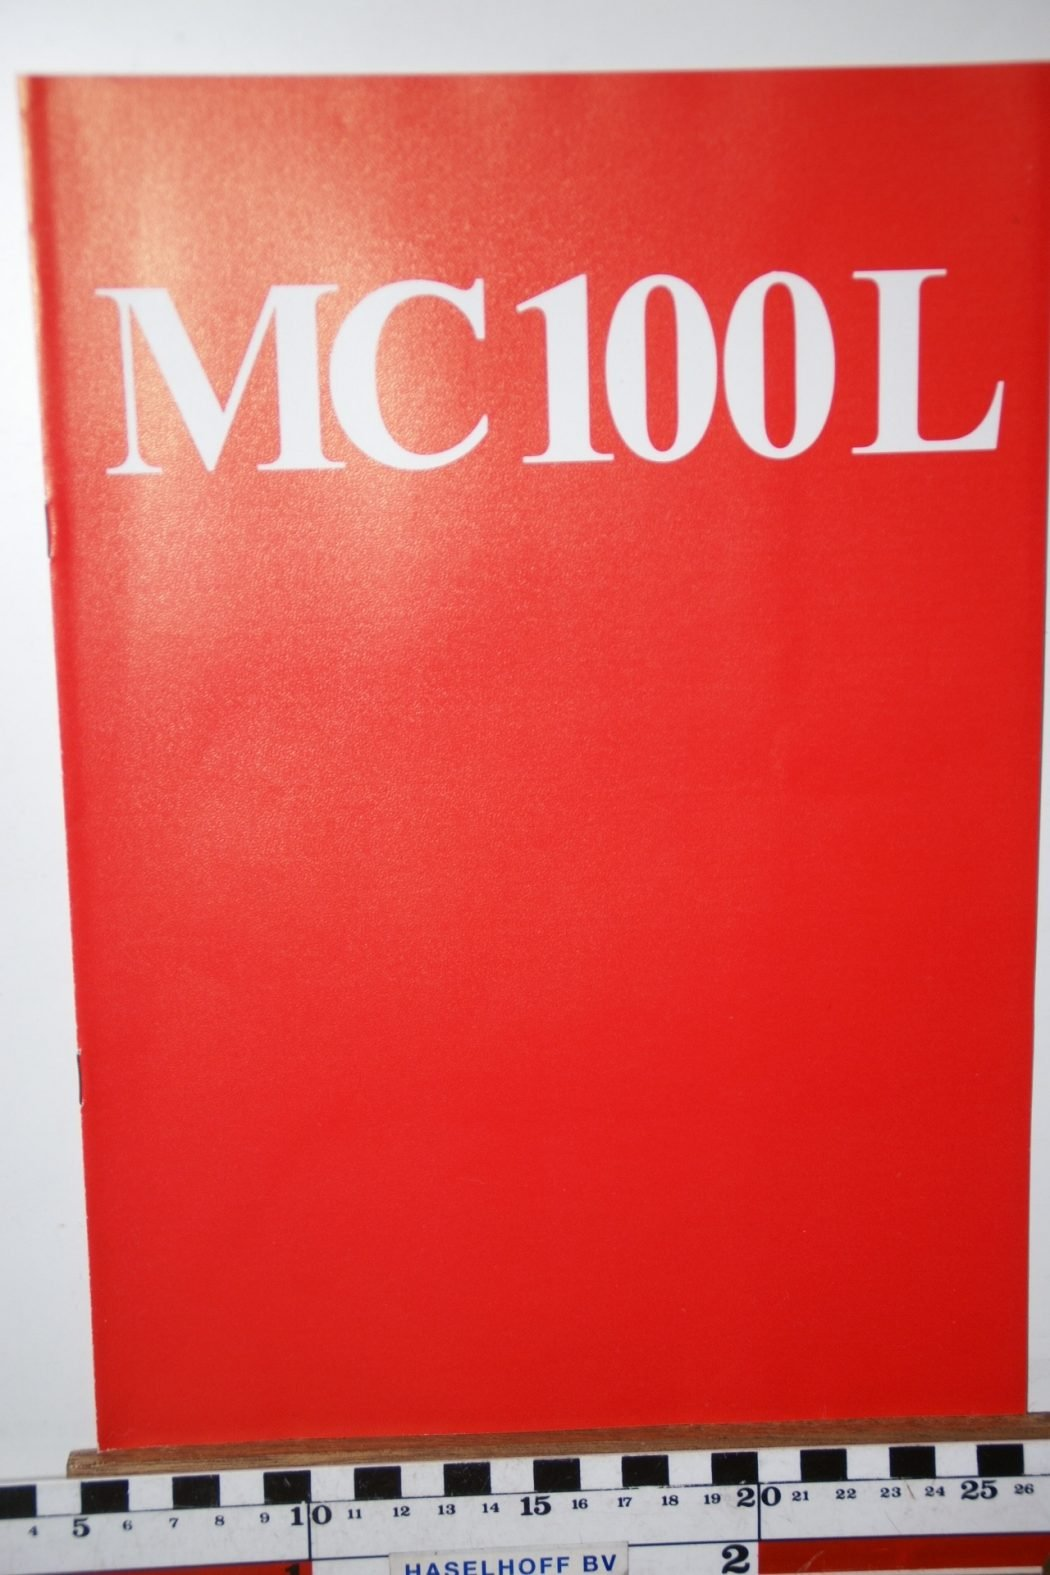 DSC02586 1973 brochure Poclain MC100L